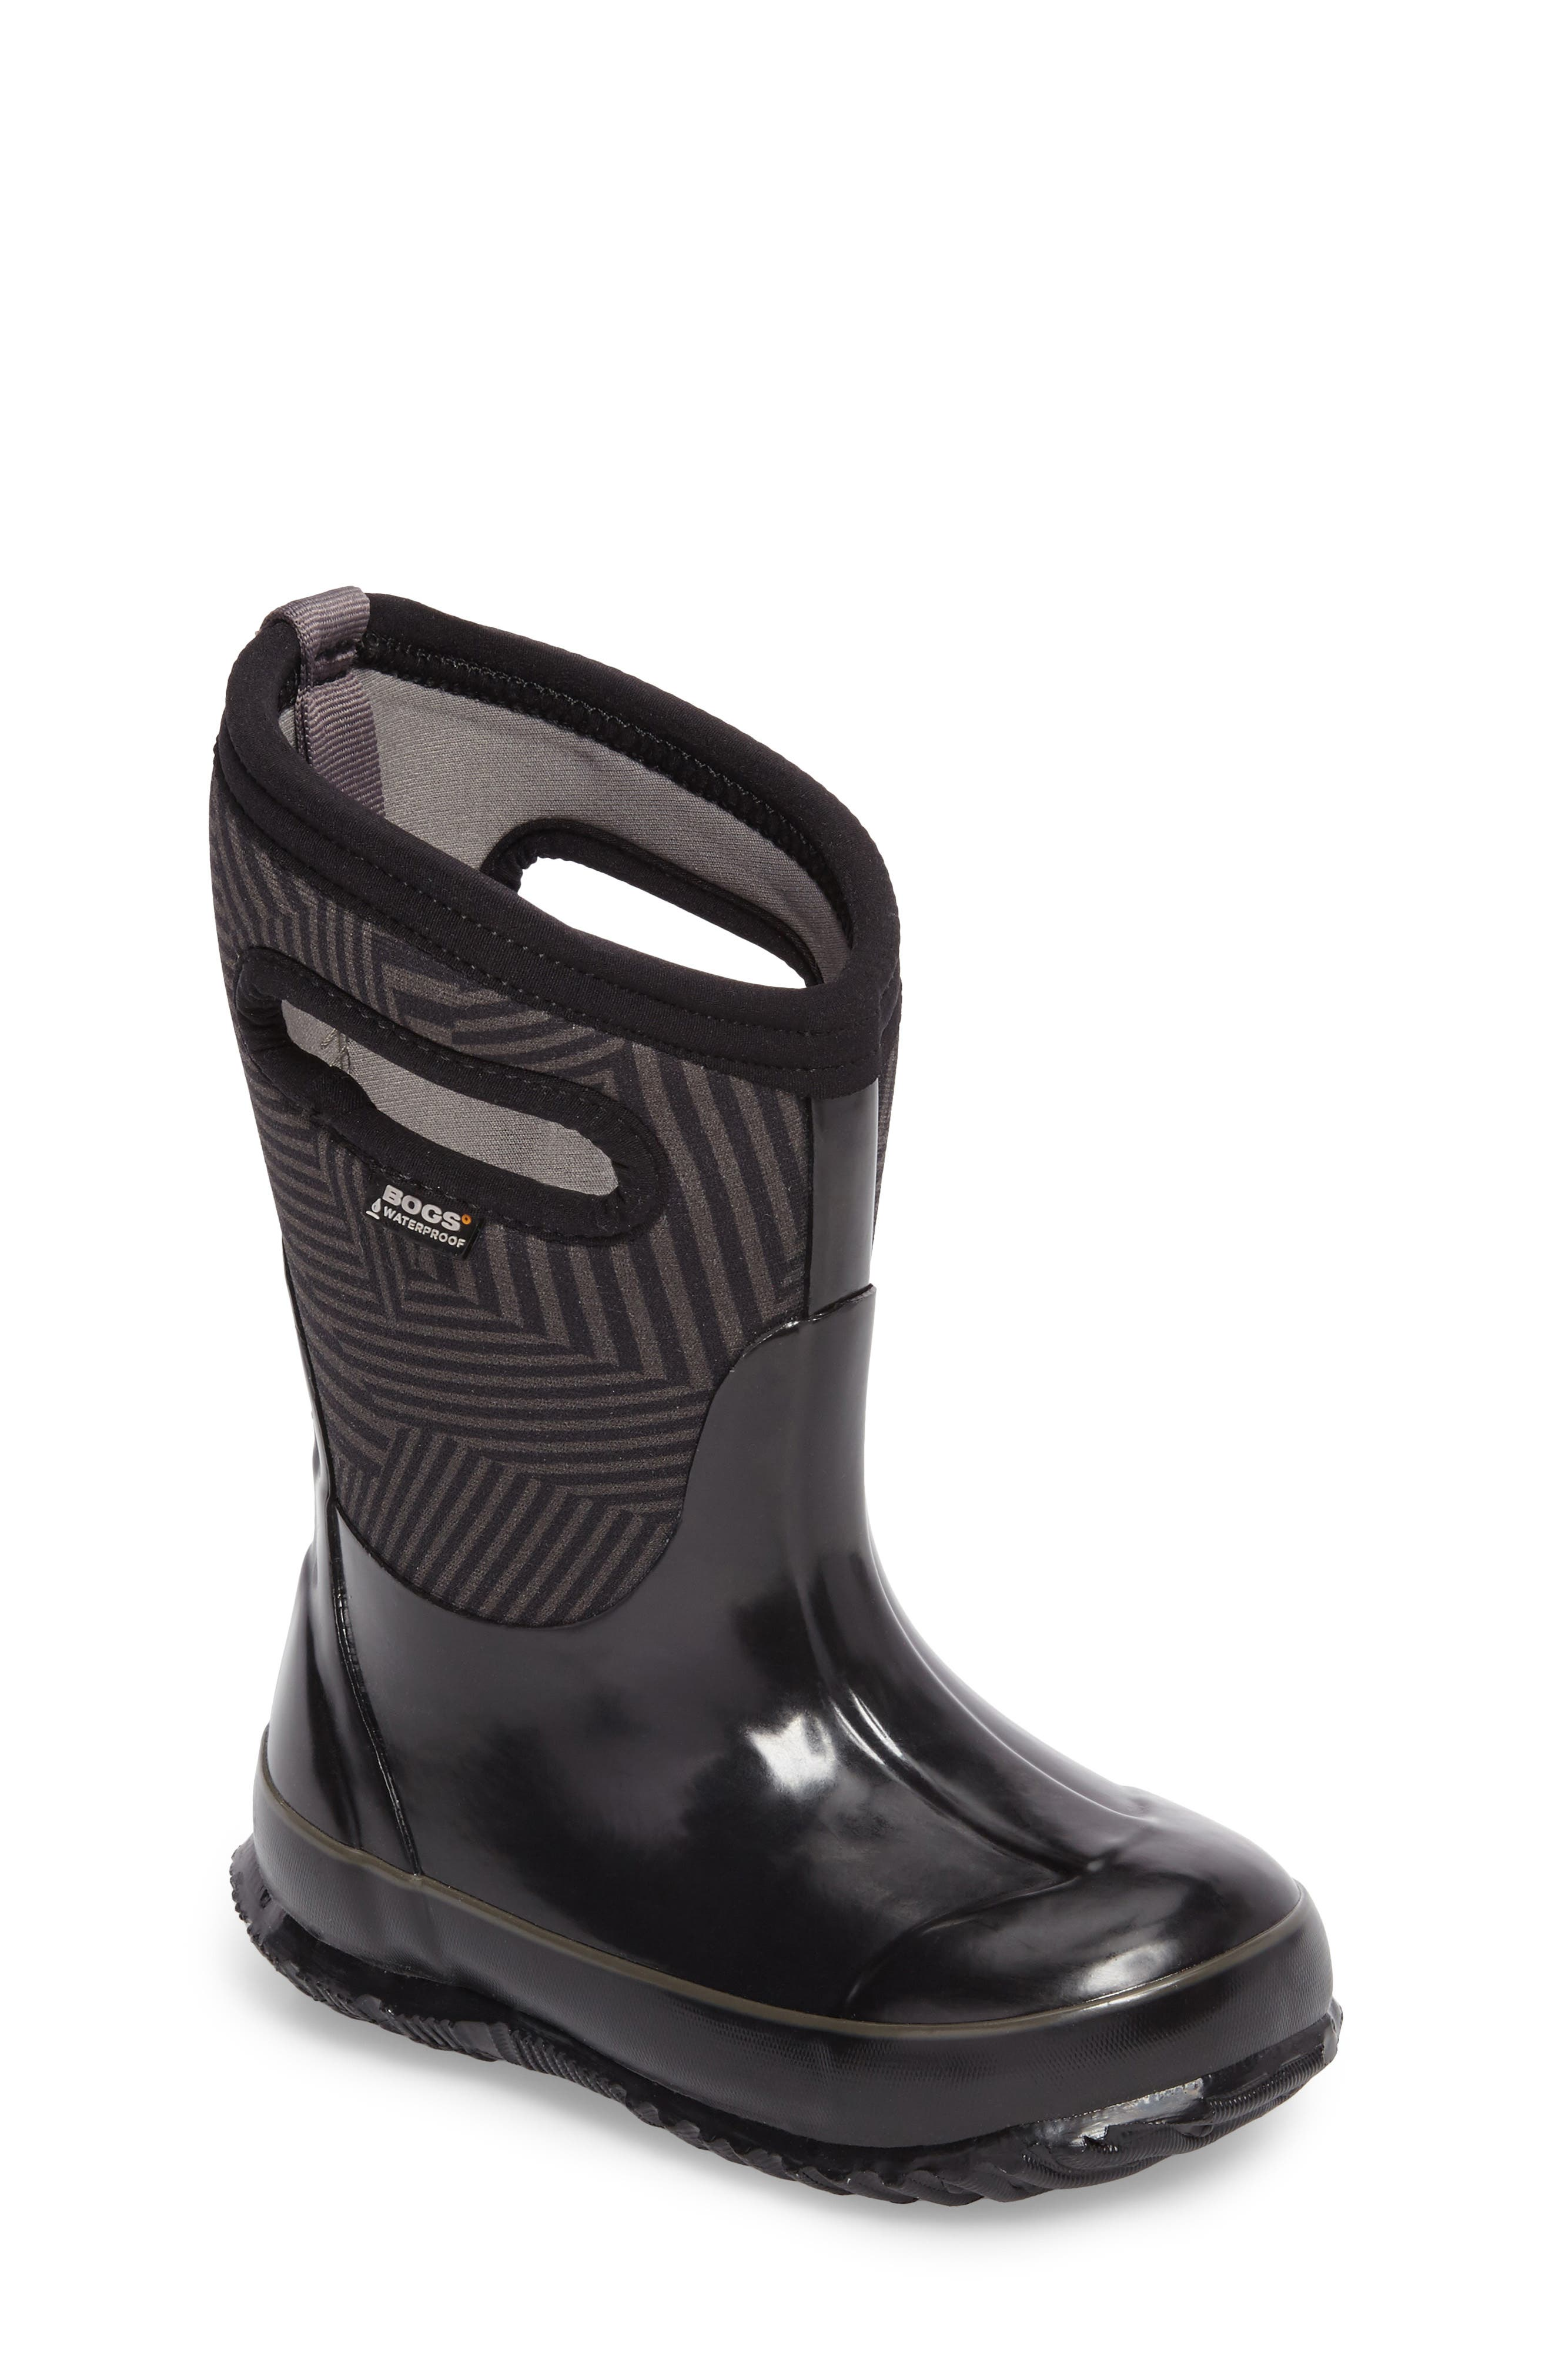 Main Image - Bogs Classic Phaser Insulated Waterproof Boot (Toddler, Little Kid & Big Kid)